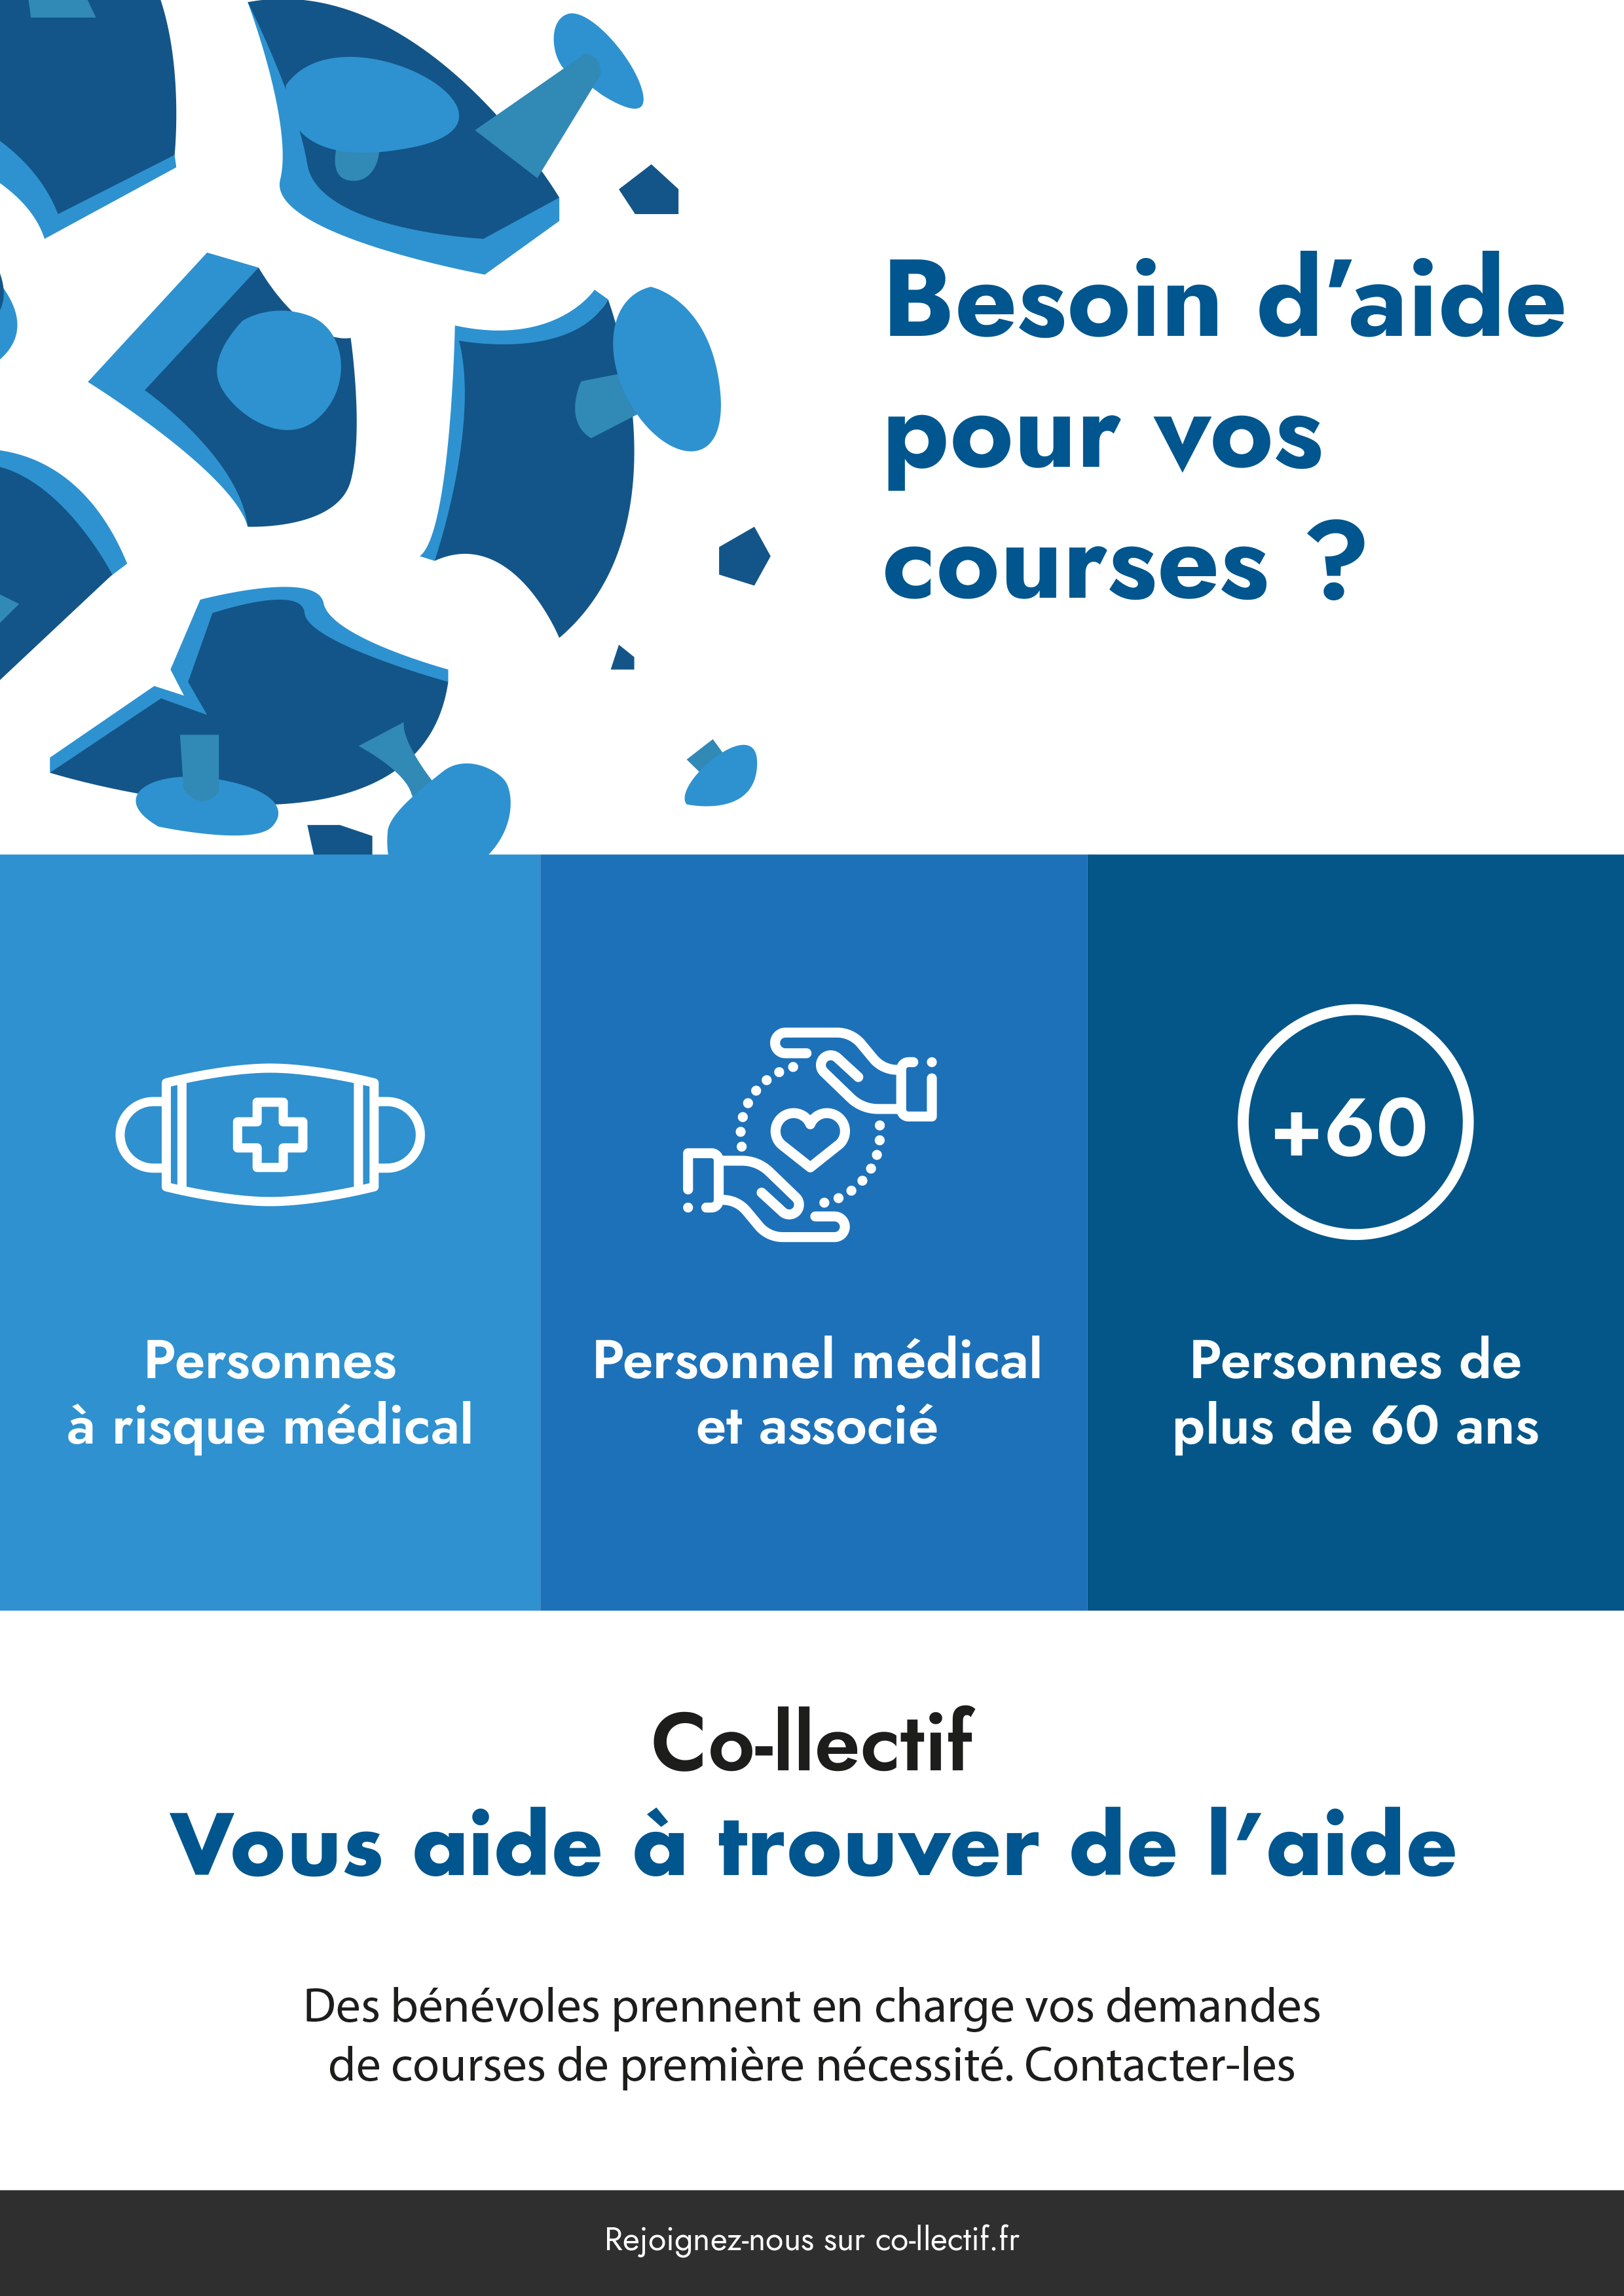 Covid19 projet co-llectif